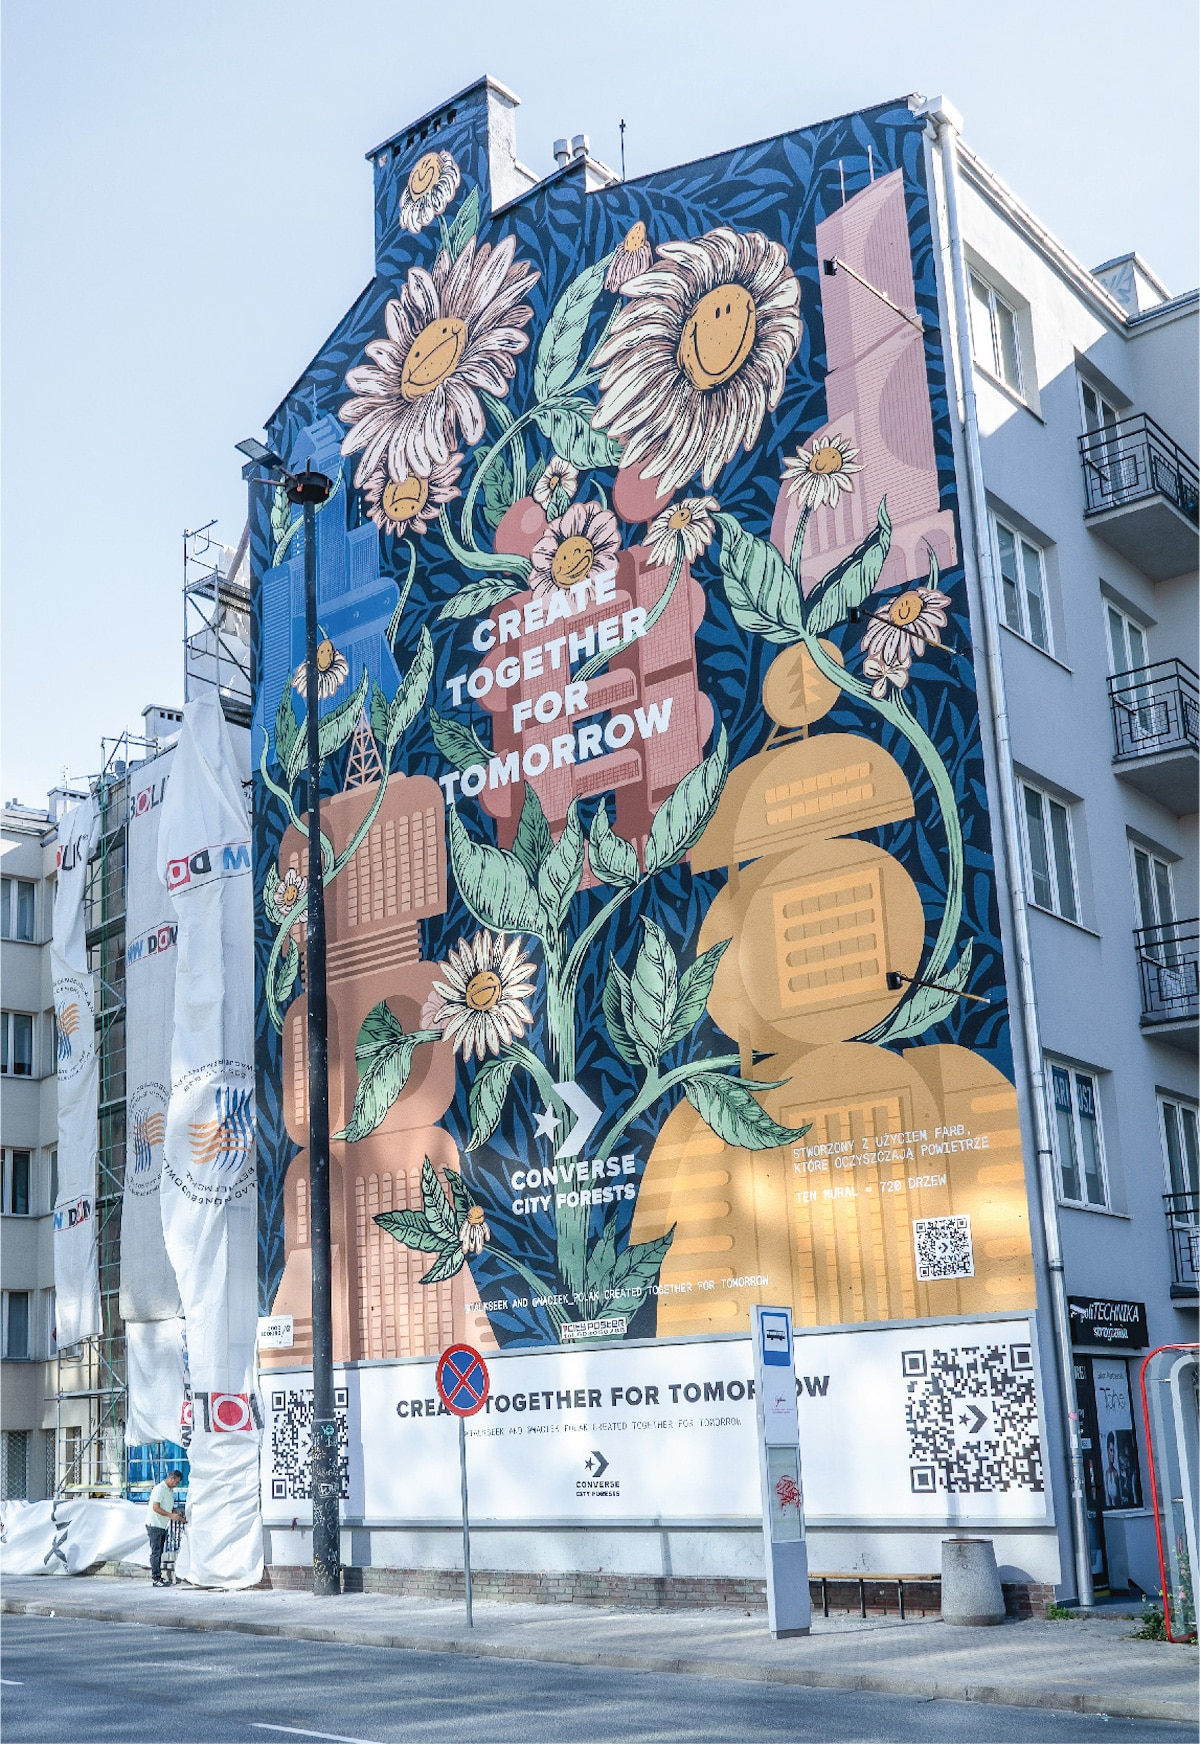 Converse Environmentally Friendly Mural in Warsaw